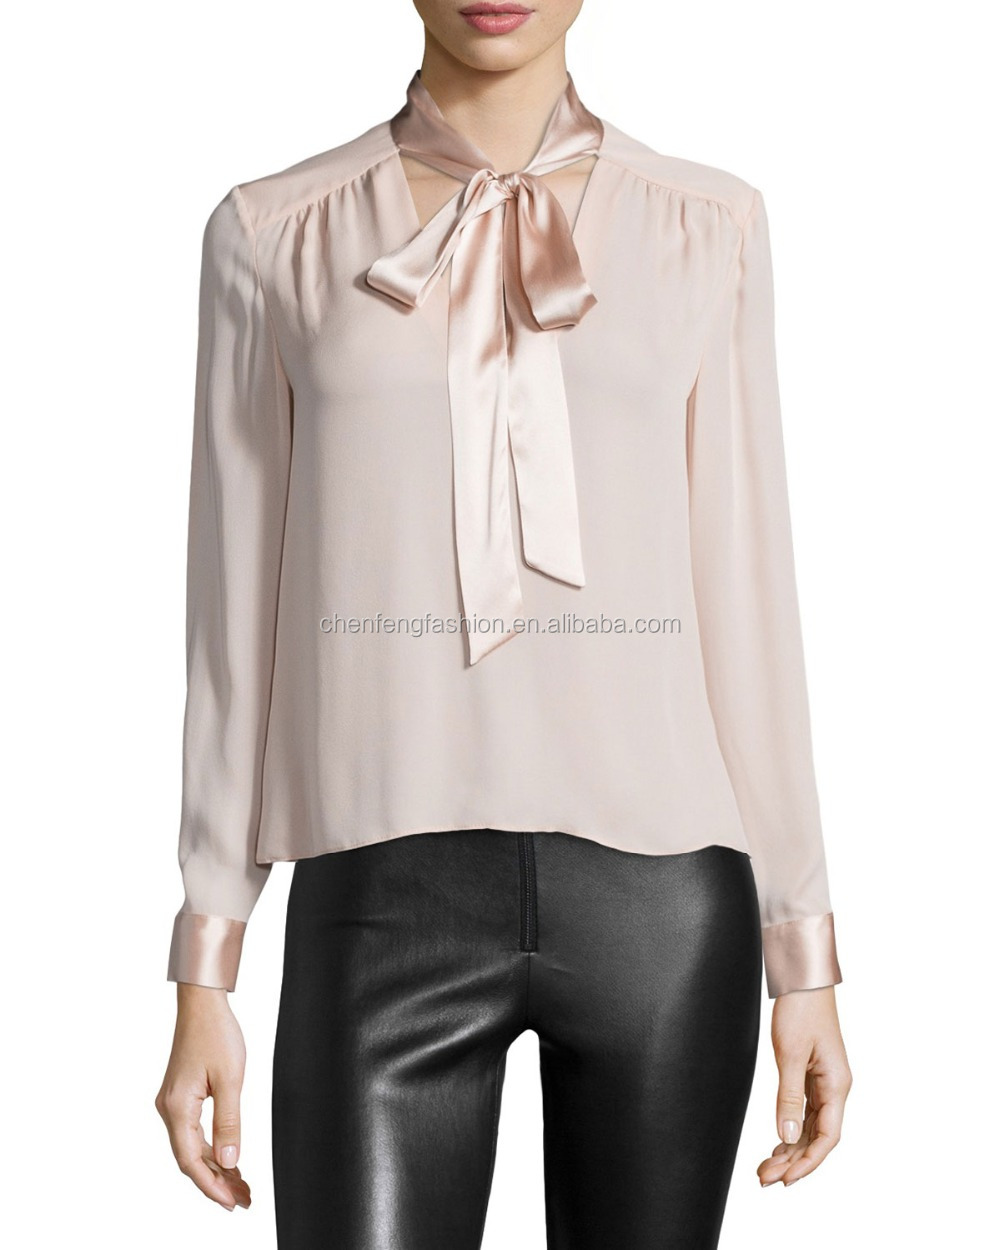 Formal Chiffon Blouses, Formal Chiffon Blouses Suppliers and ...